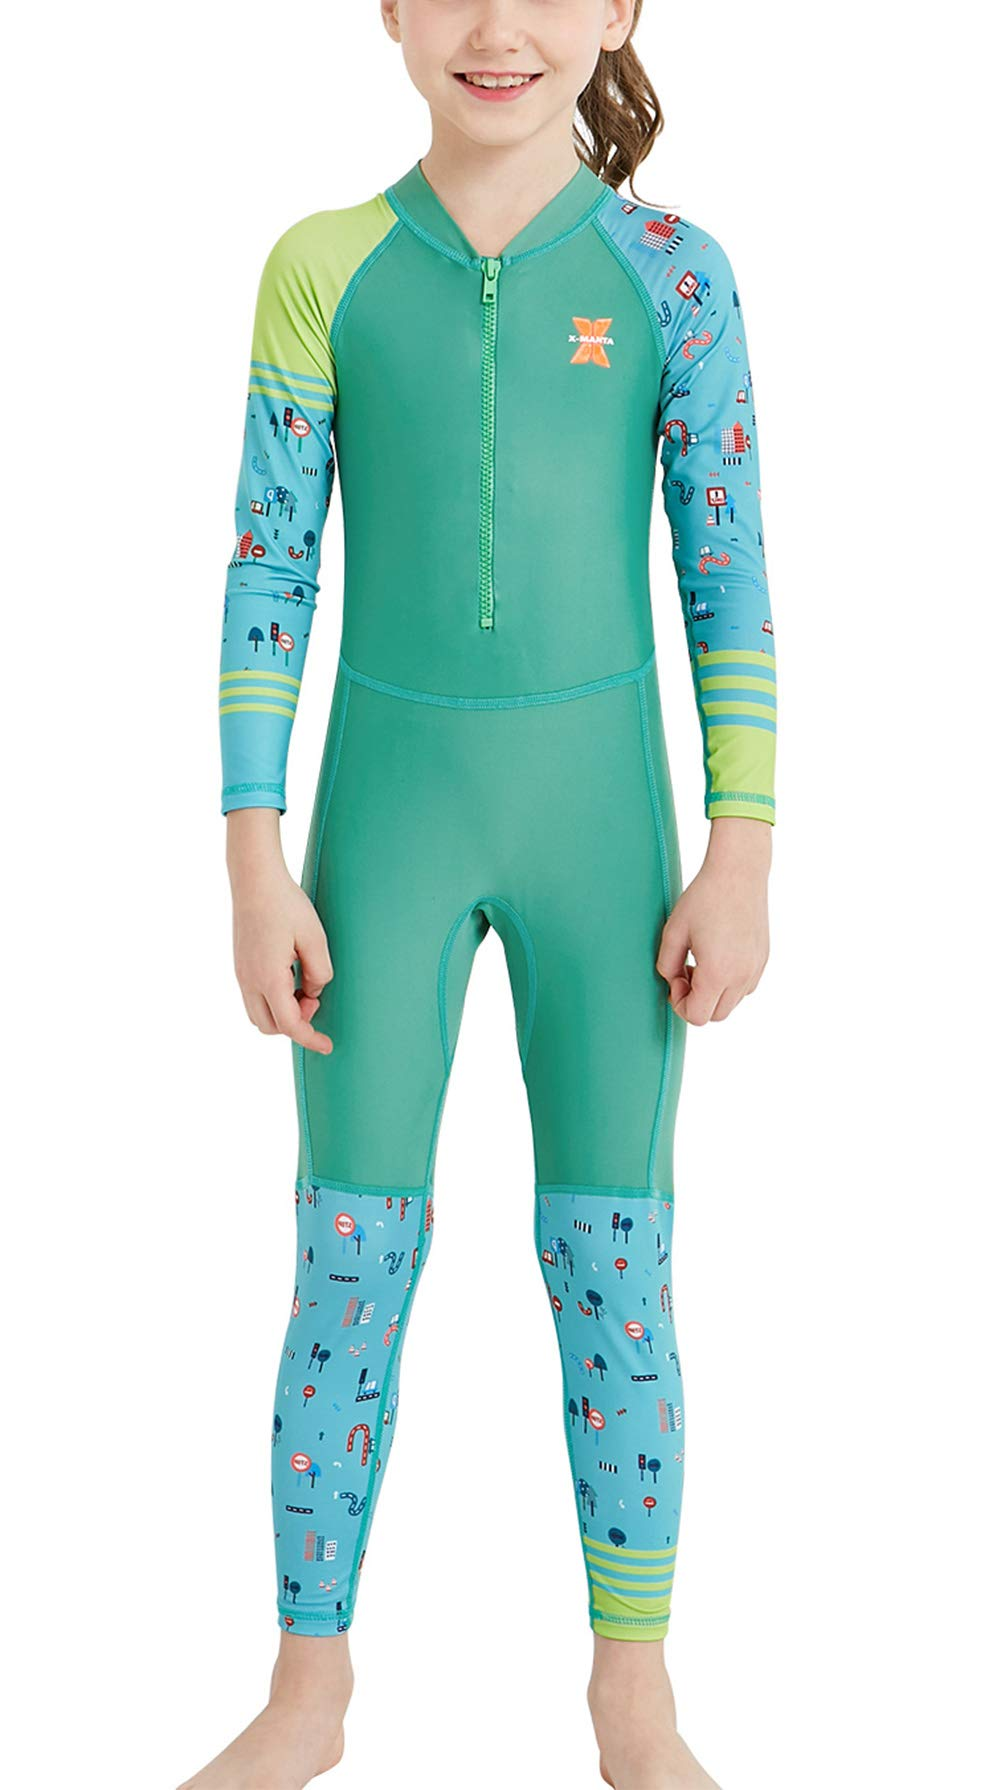 DIVE & SAIL Girls One Piece Rash Guard Long Sleeve Sun Protection Sunsuit Printed Swimwear UPF50+ UV Protection Diving Suit Green S